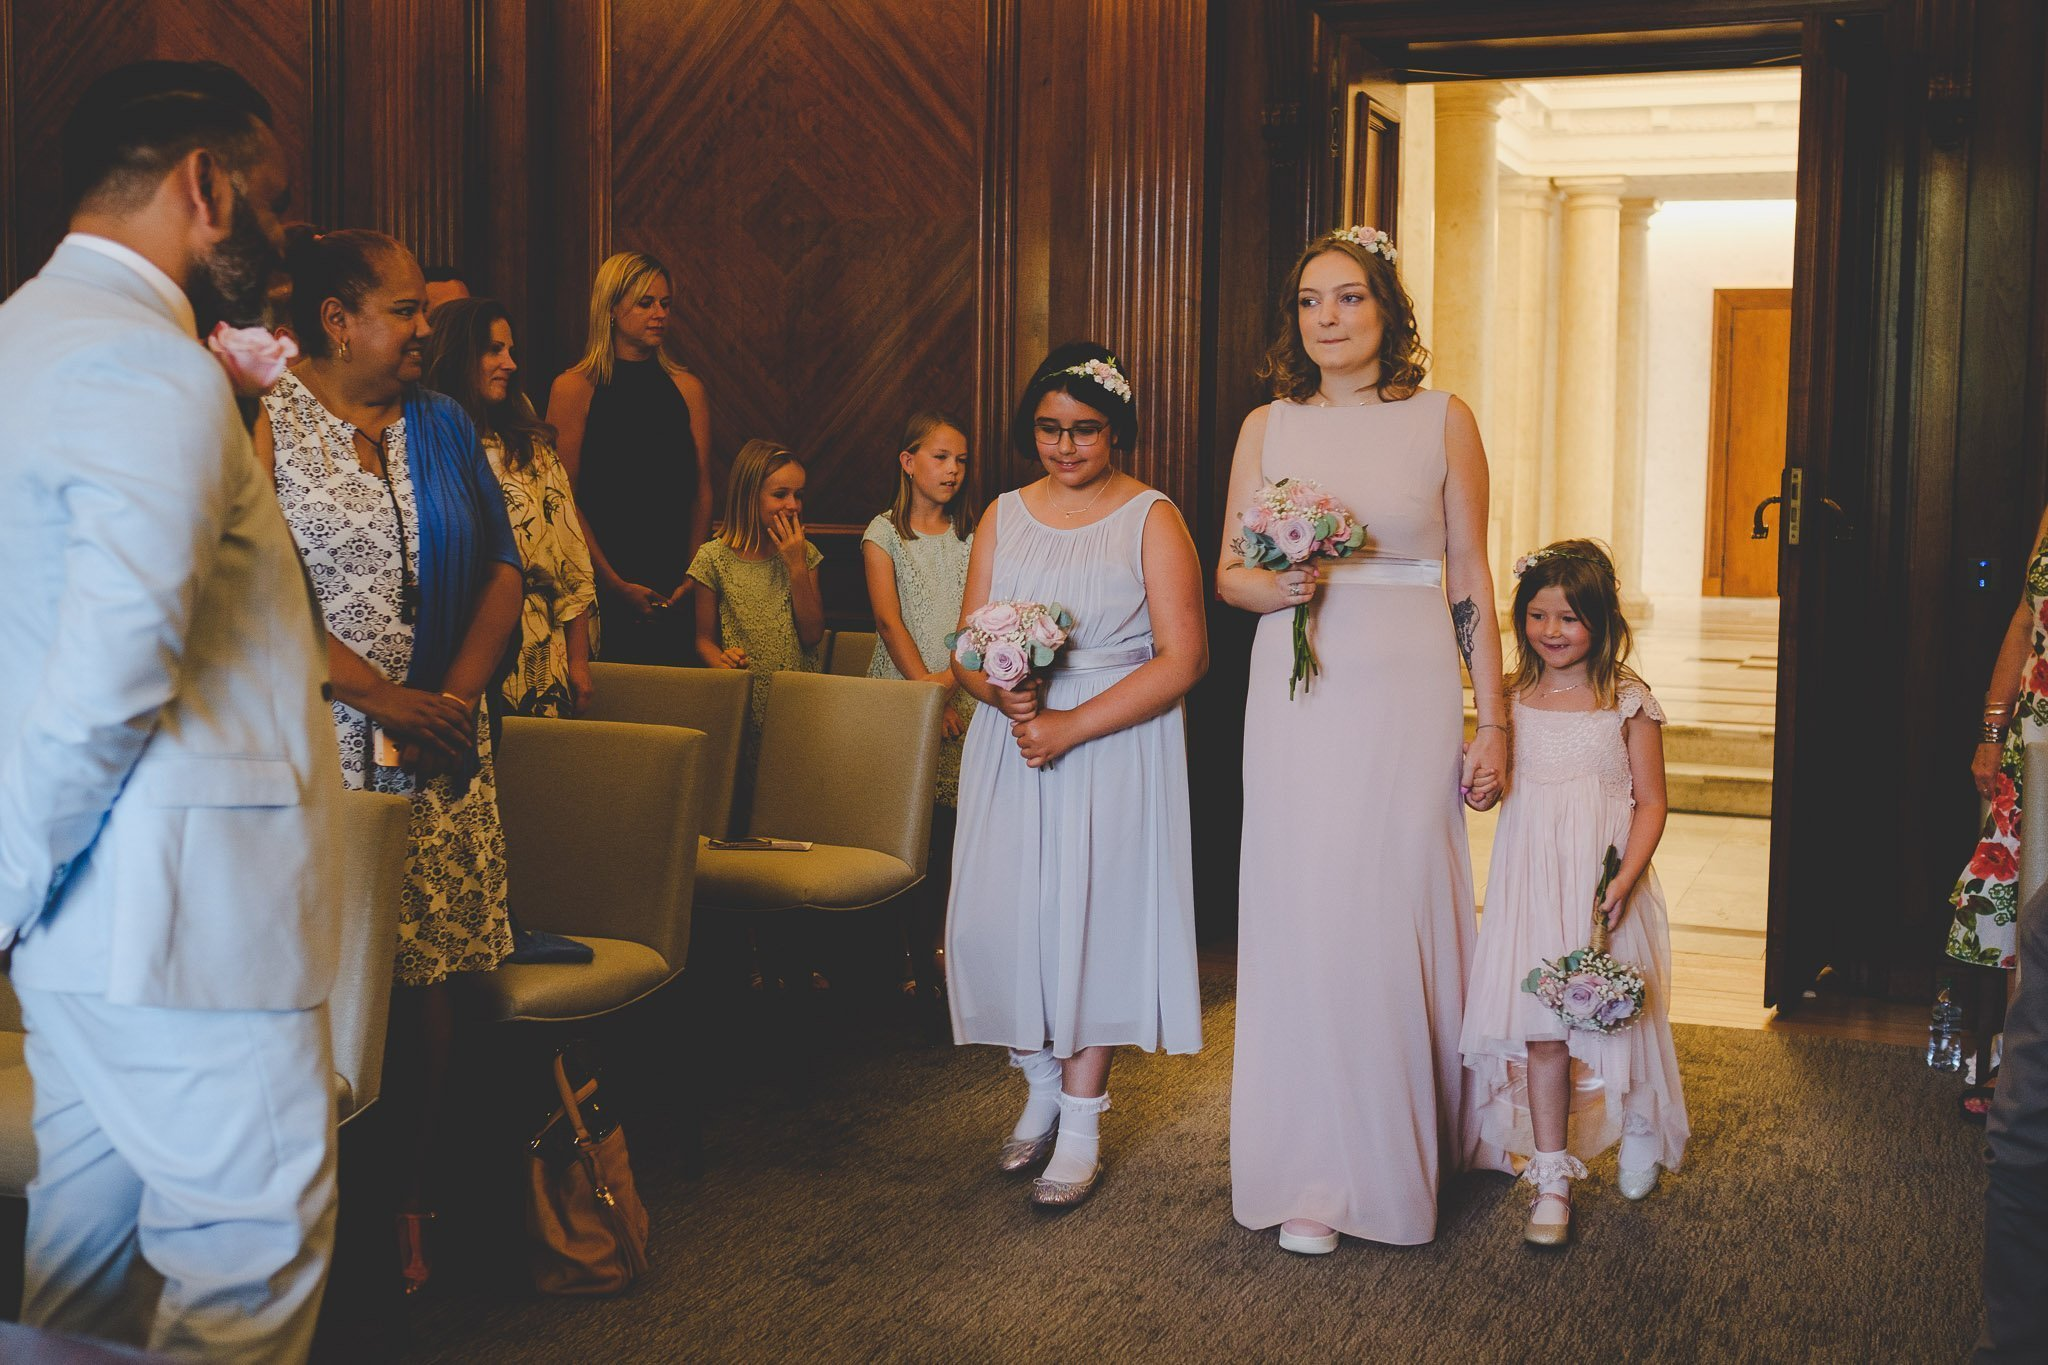 Bridesmaids walking down the aisle in the Westminster Room of the Old Marylebone Town Hall London. Photography by thatthingyoupluck.